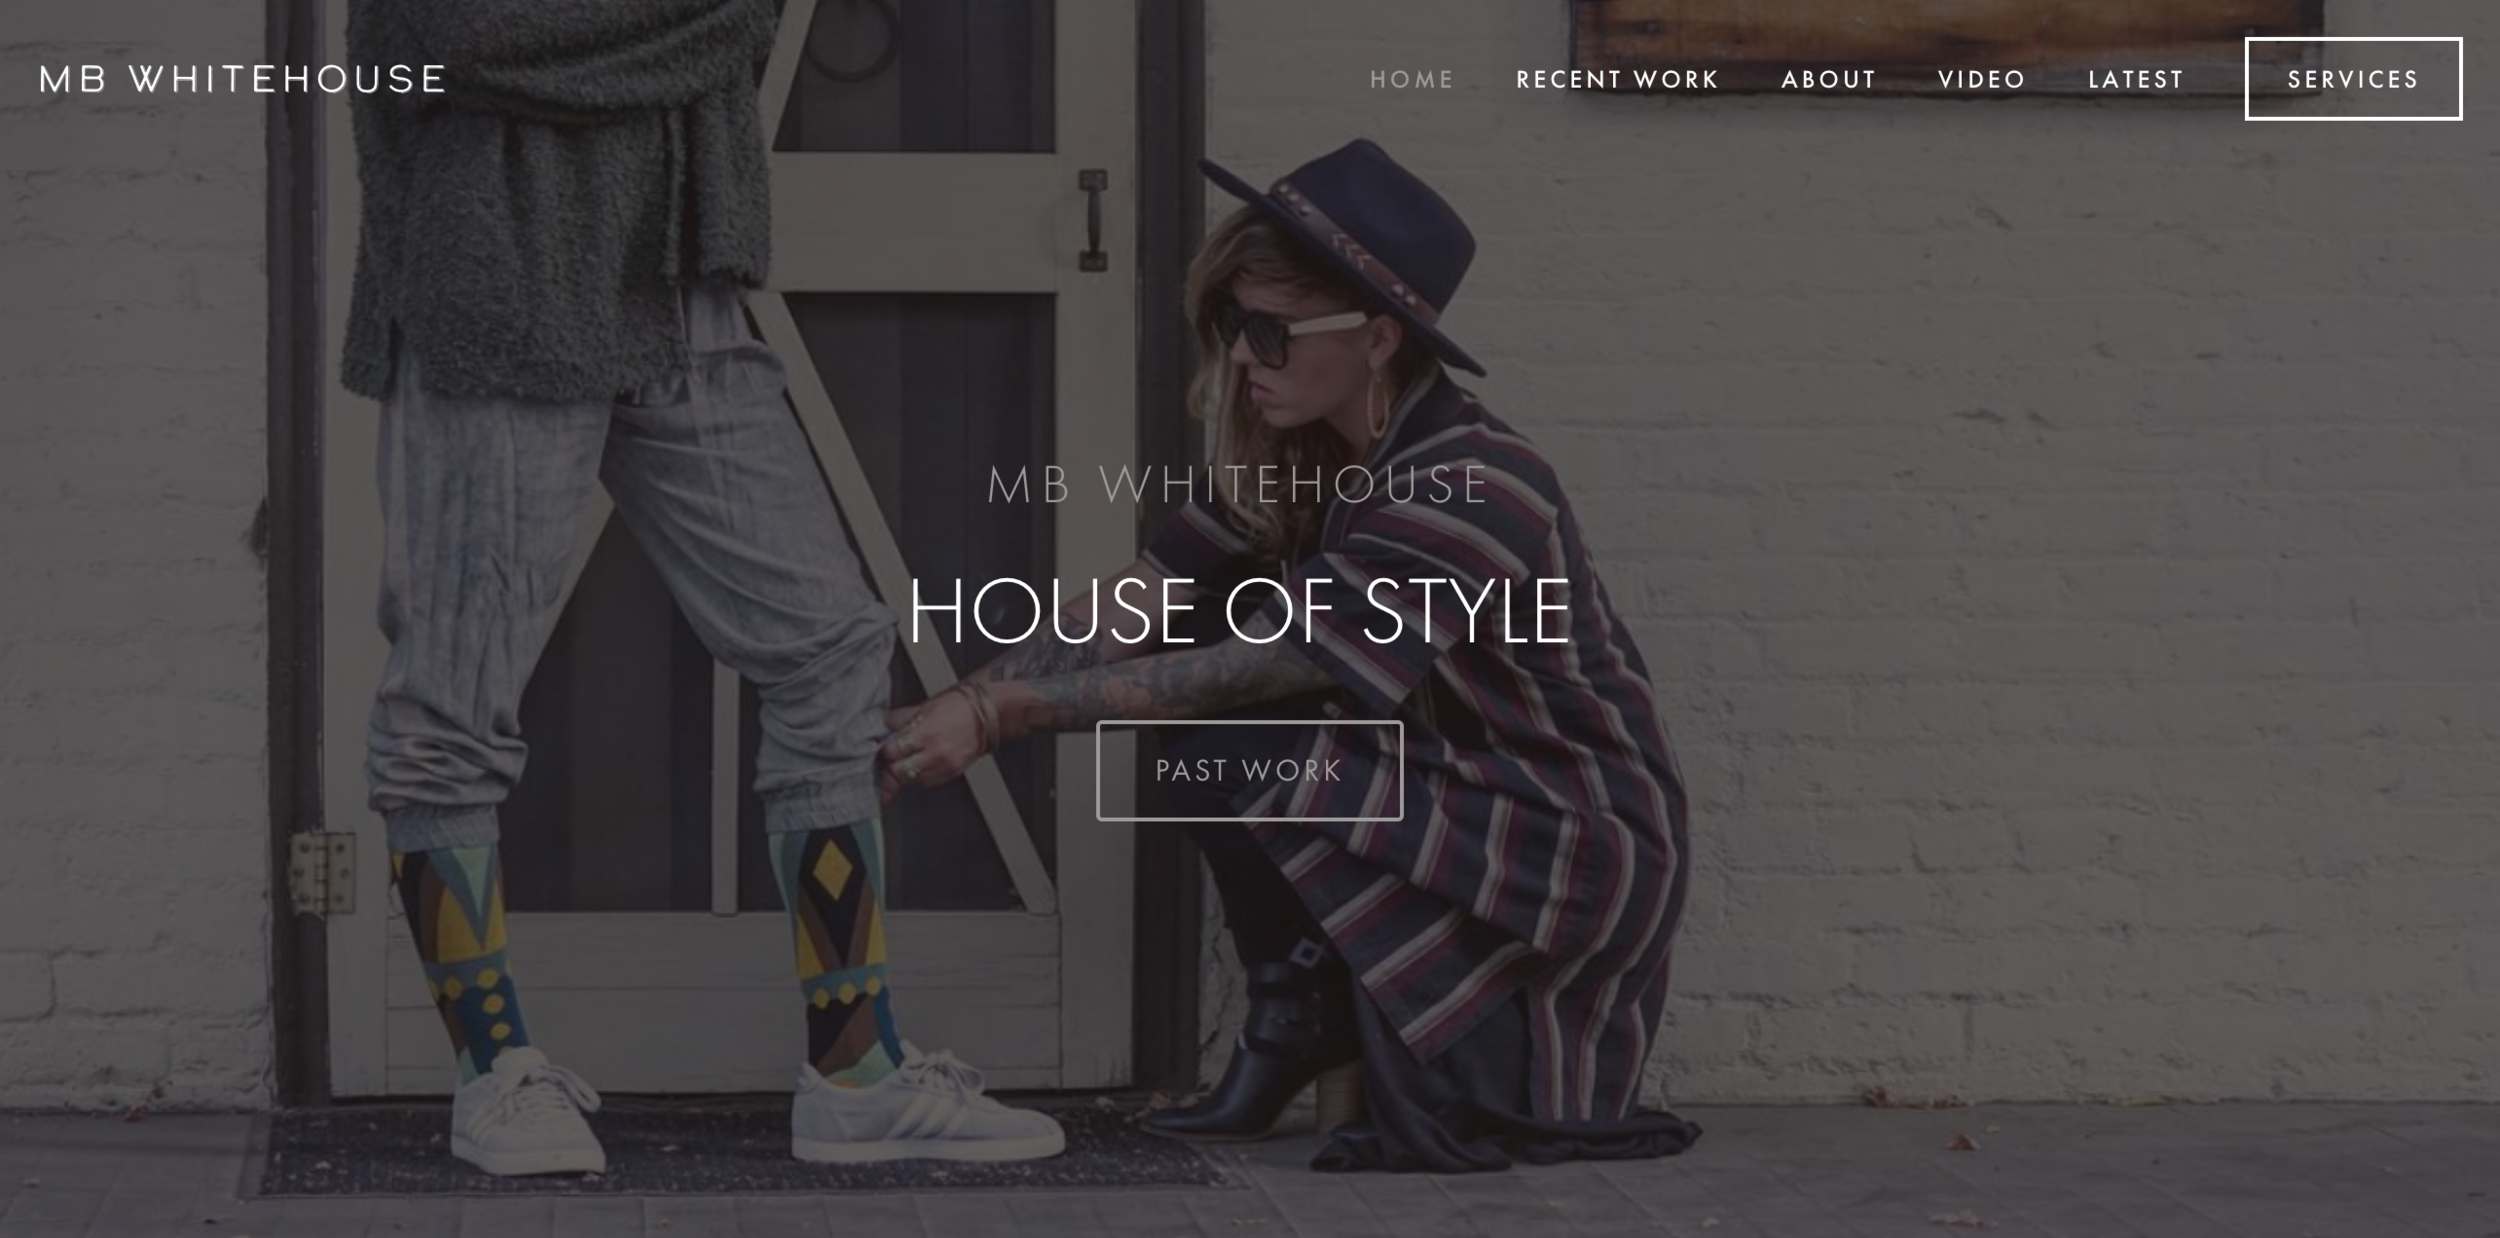 MB WHITEHOUSE | STYLIST   Website design, and layout